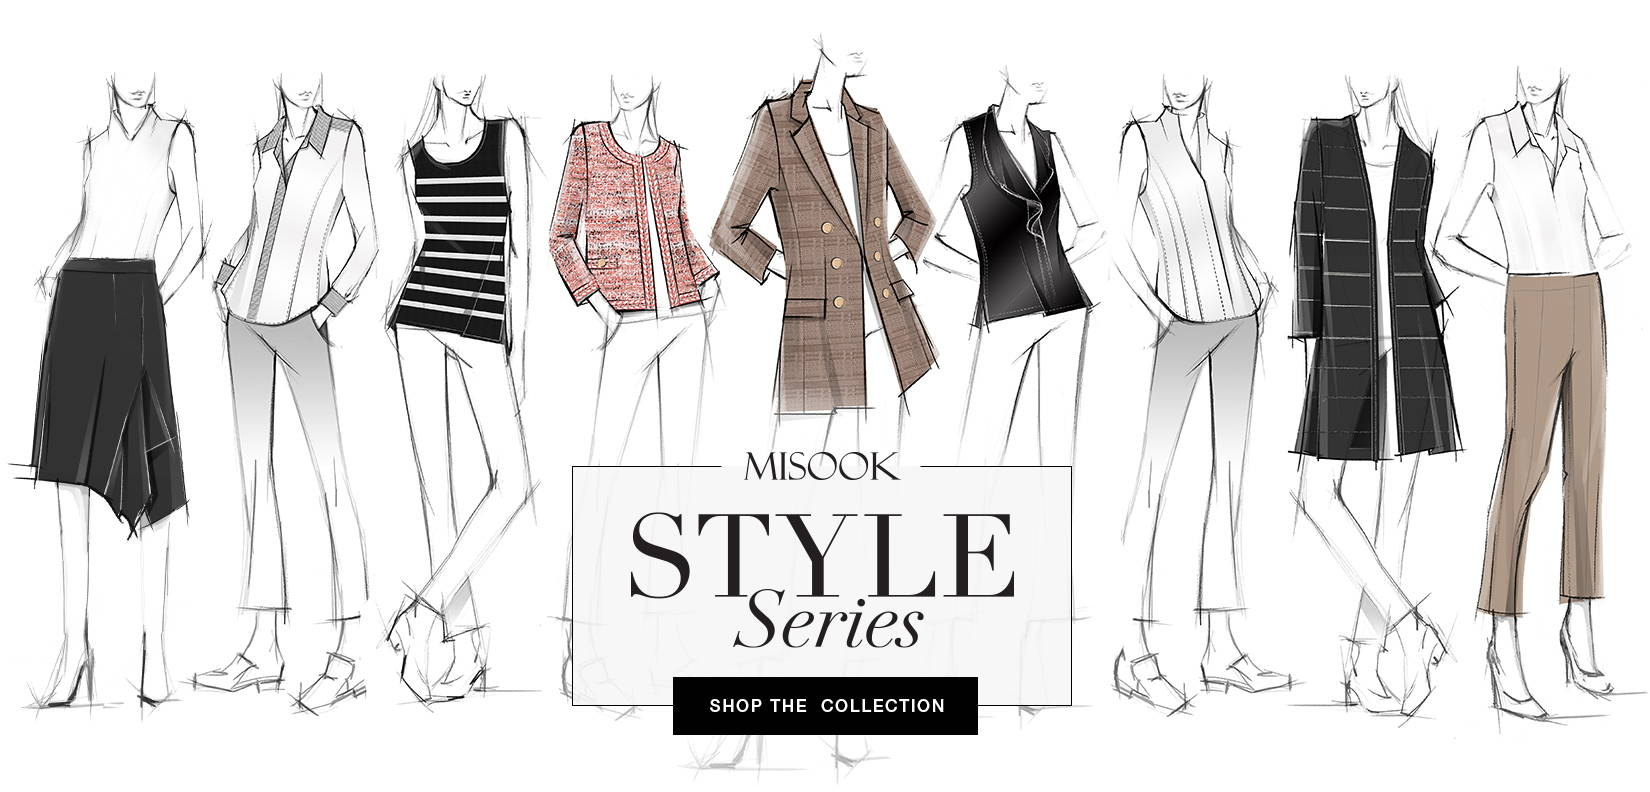 Misook Style Series Collection Banner